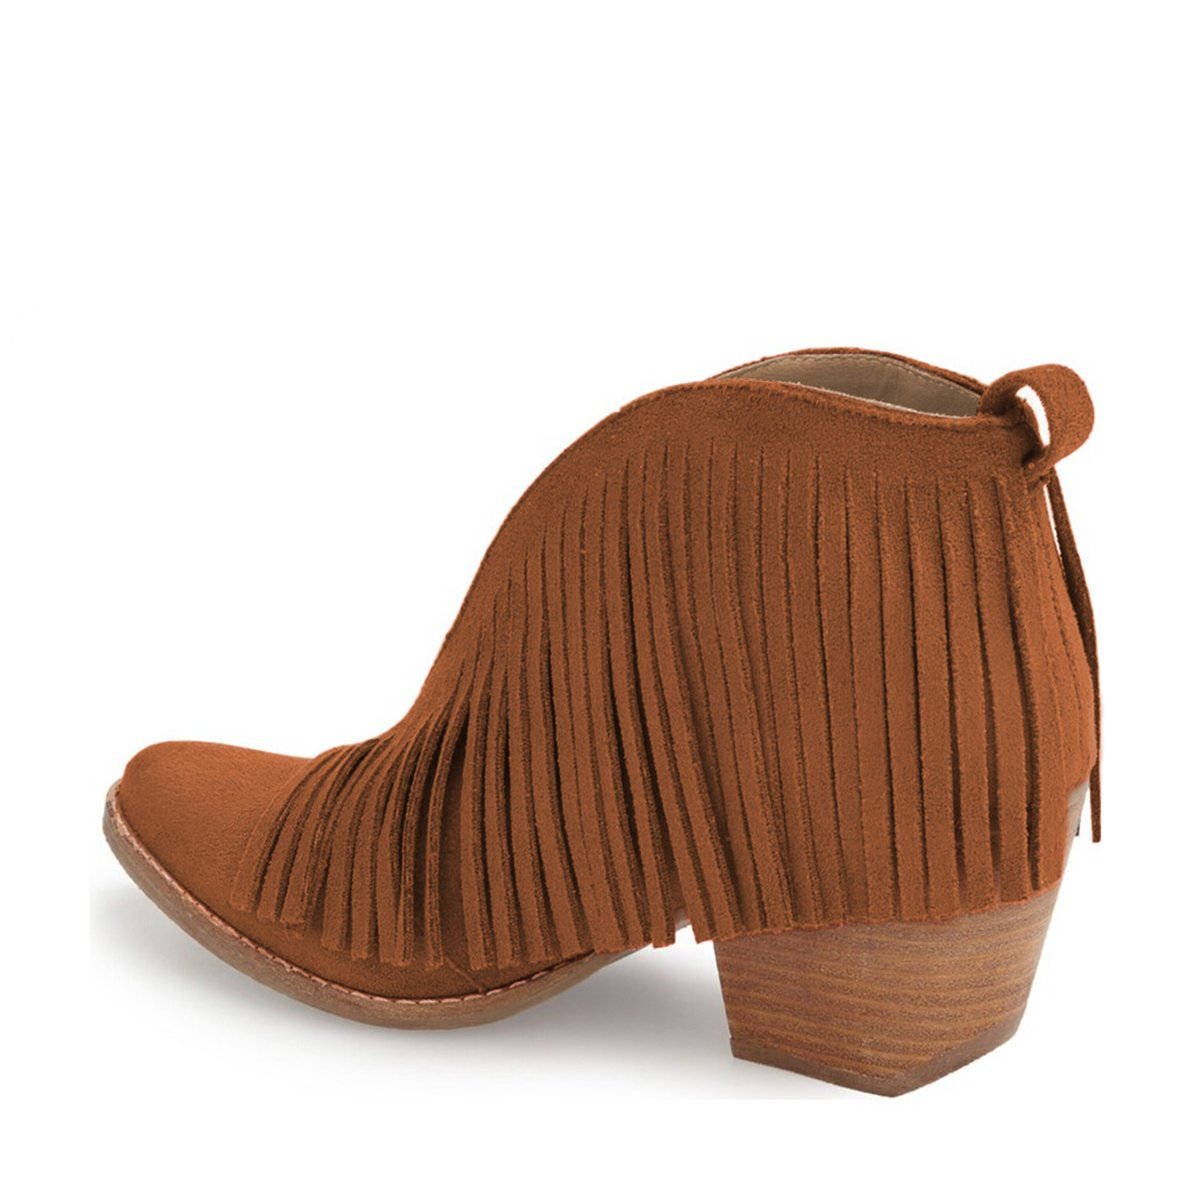 YDN Western Ankle High Boots with Tassels Round Toe Block B01KC2A2EY Heel Suede Retro Booties B01KC2A2EY Block 6 B(M) US|Brown 15c3b3